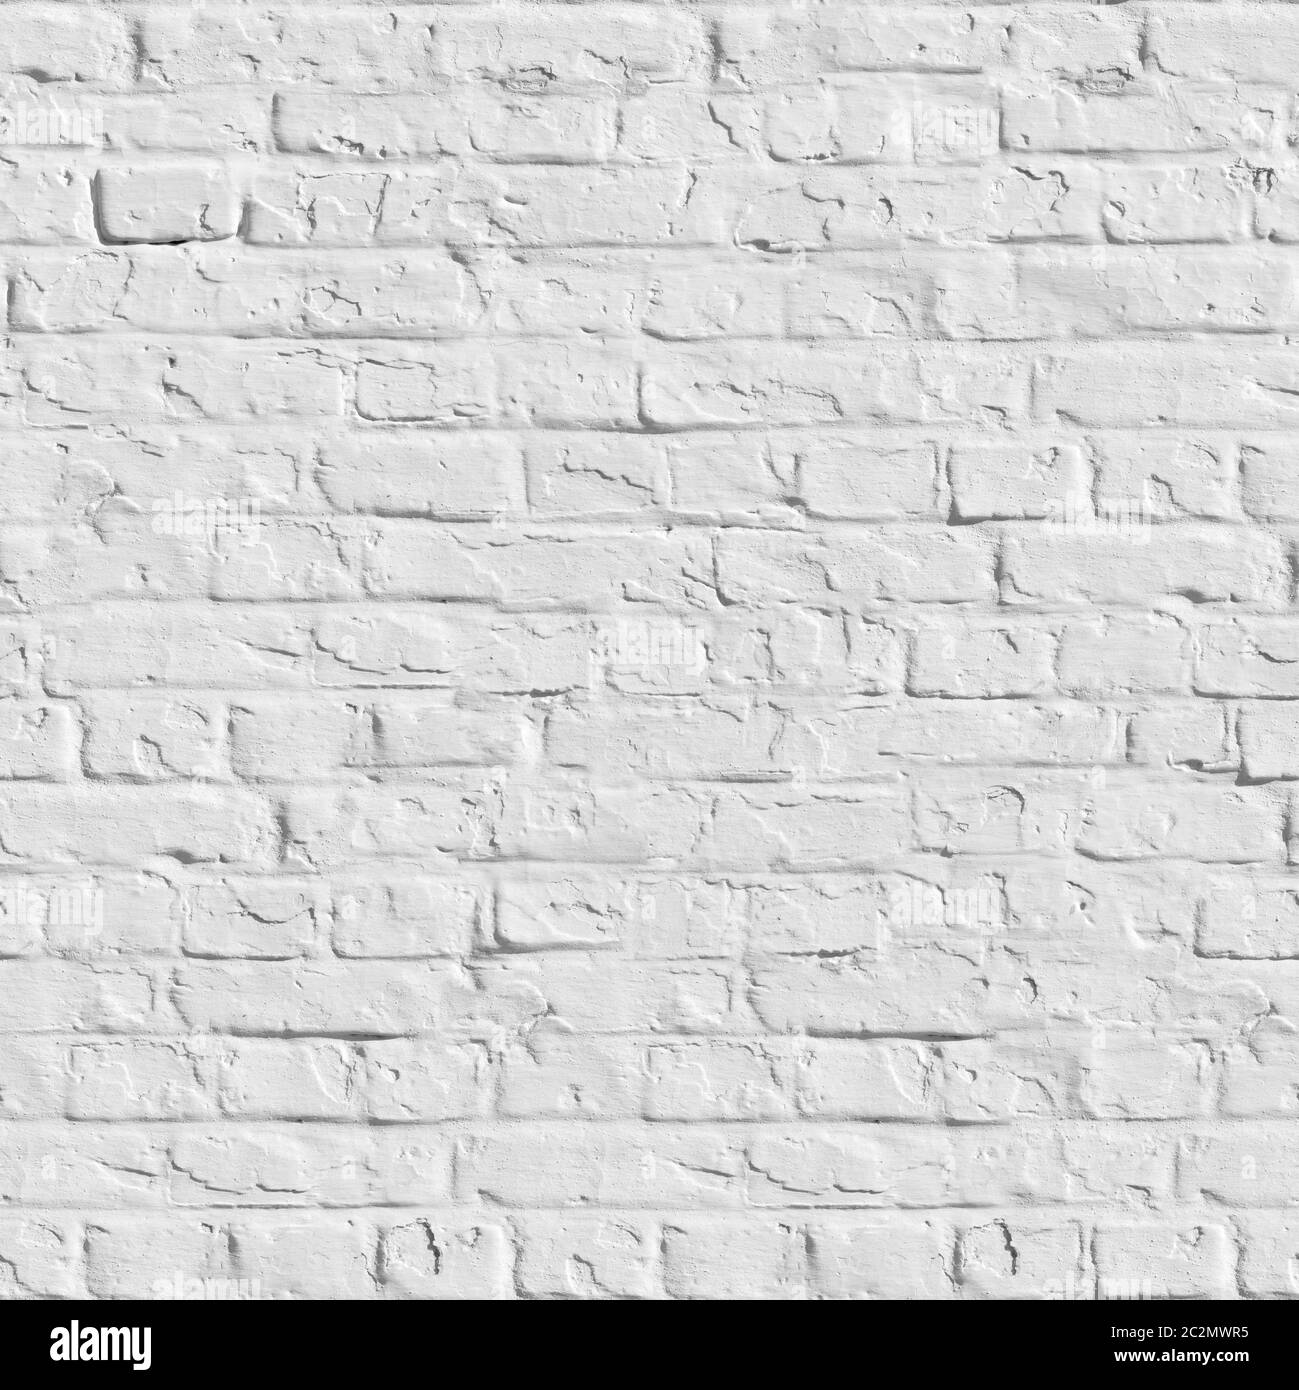 Old White Brick Wall Seamless Tileable Texture Stock Photo Alamy